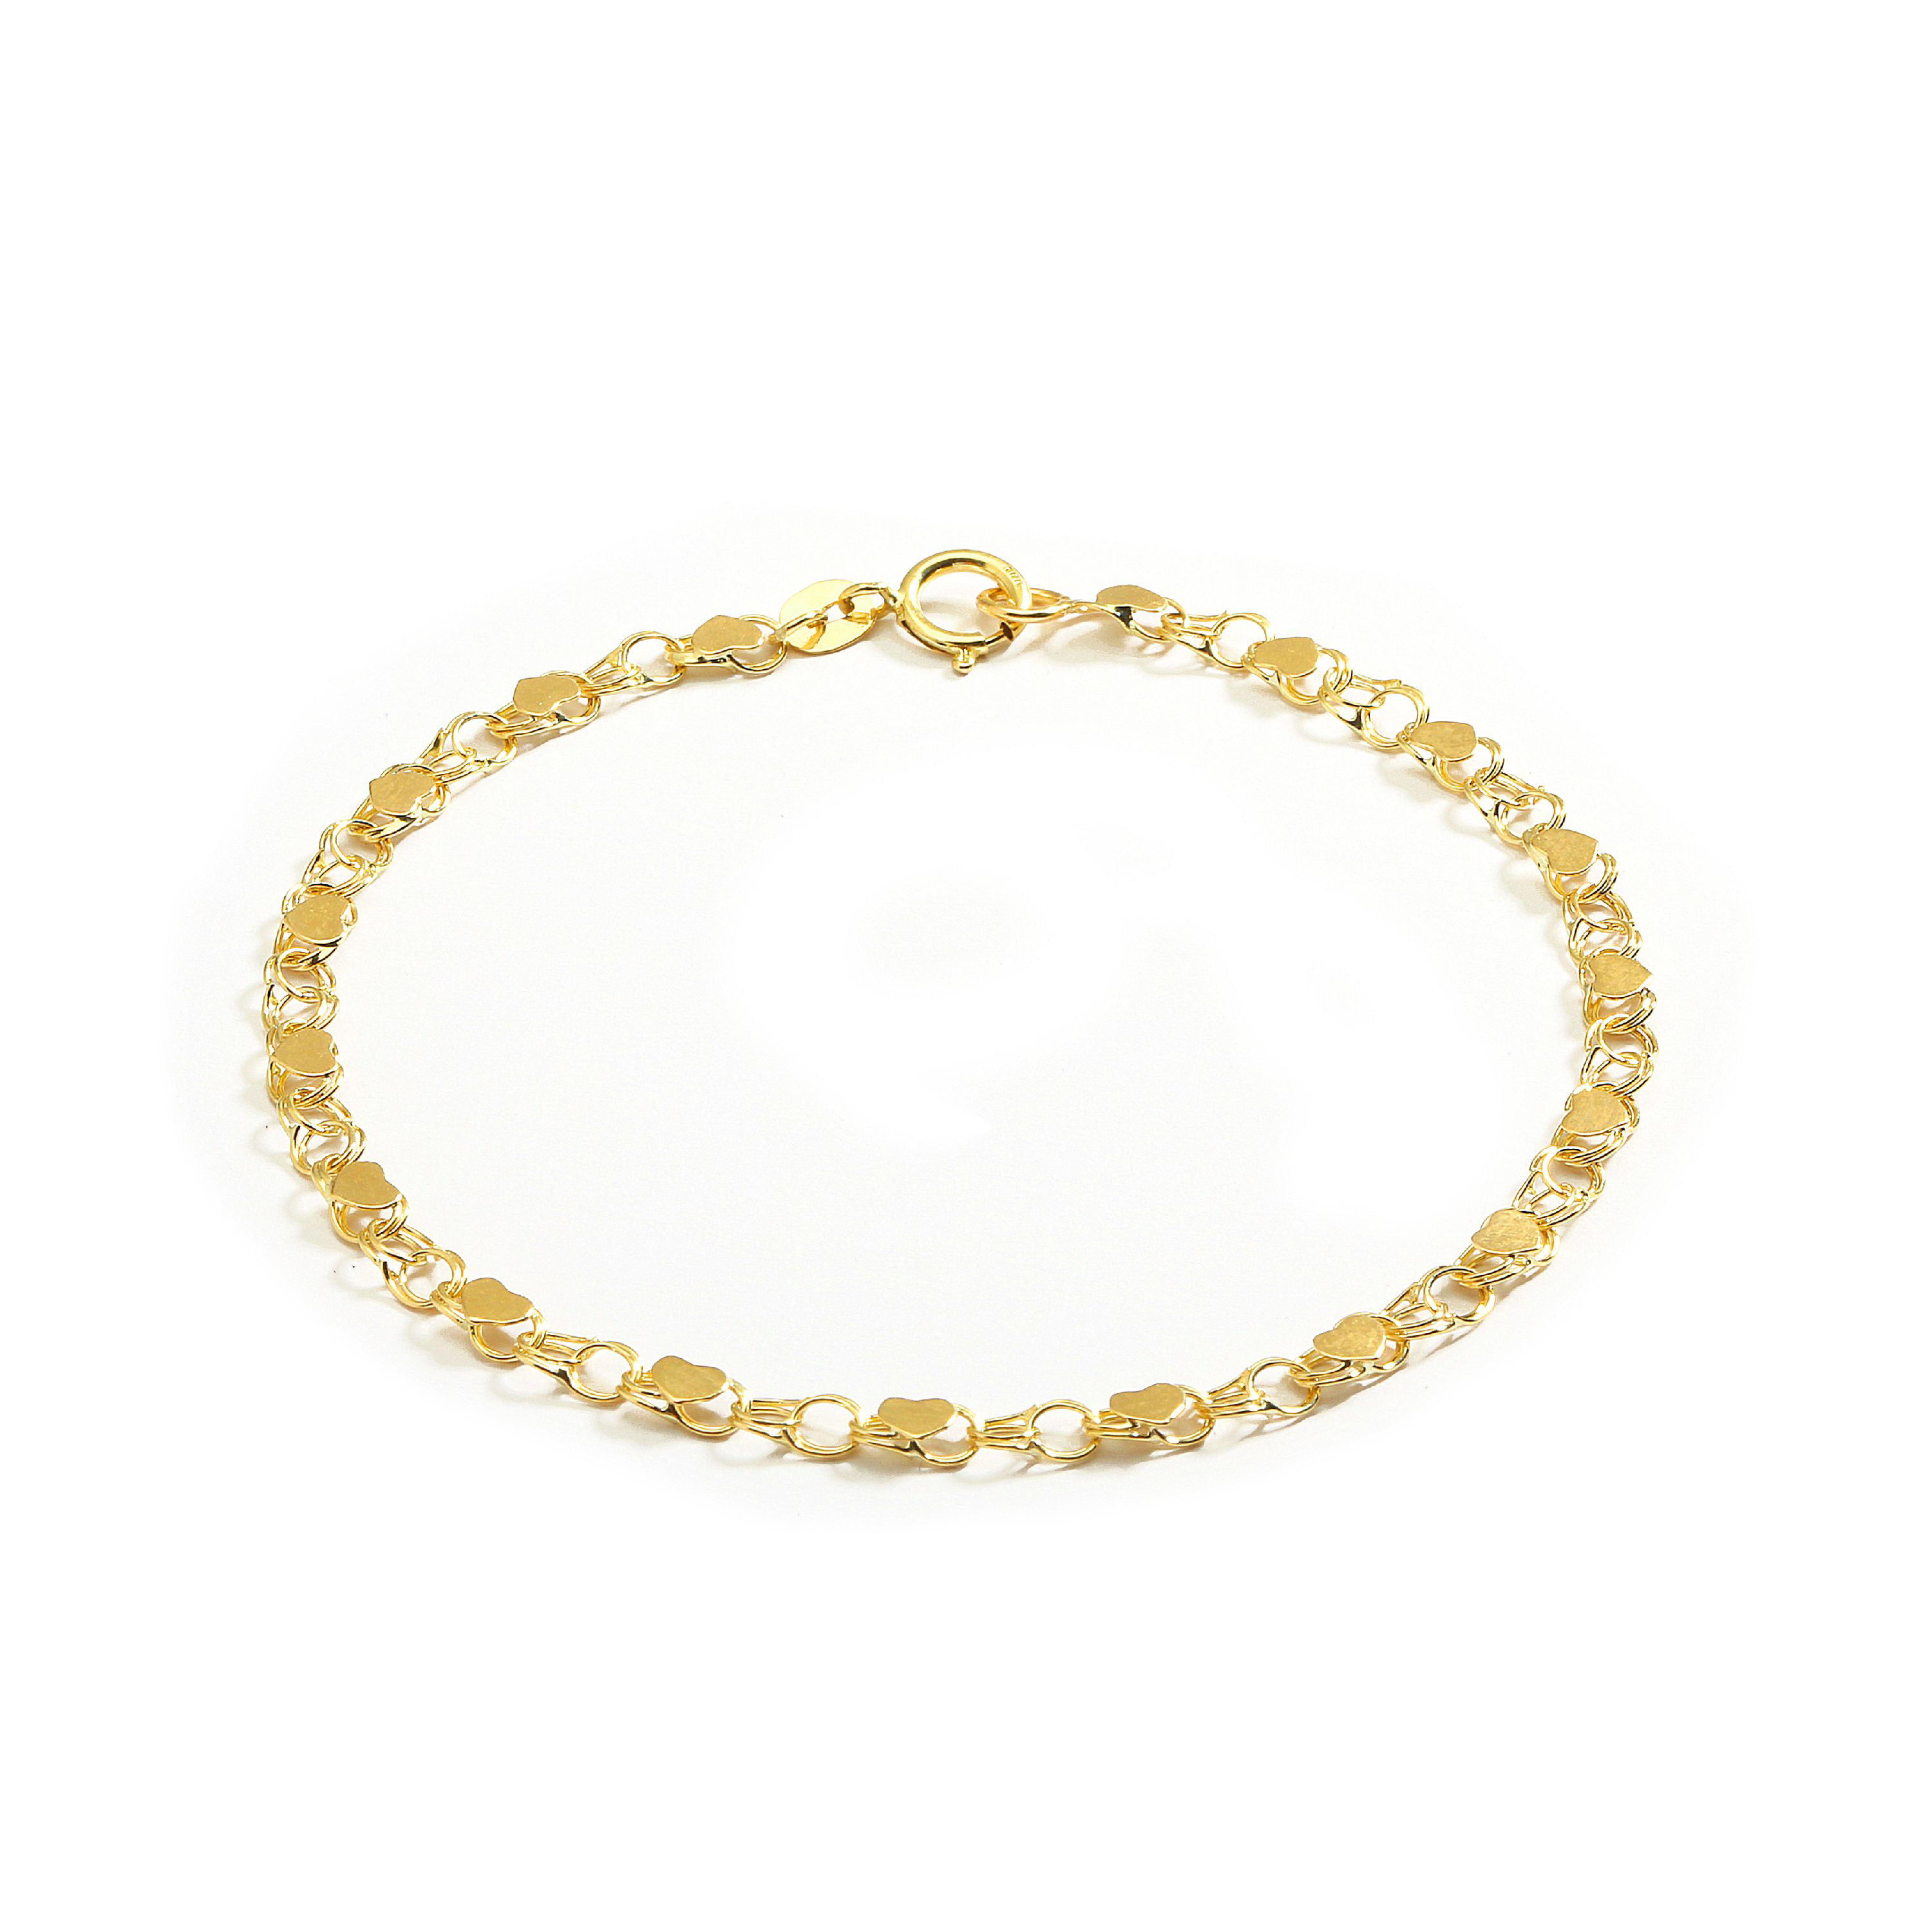 Roy Rose Jewelry 10K Yellow Gold 2mm Diamond-cut Extra-Lite Rope Chain Anklet Bracelet ~ Length 10 inches